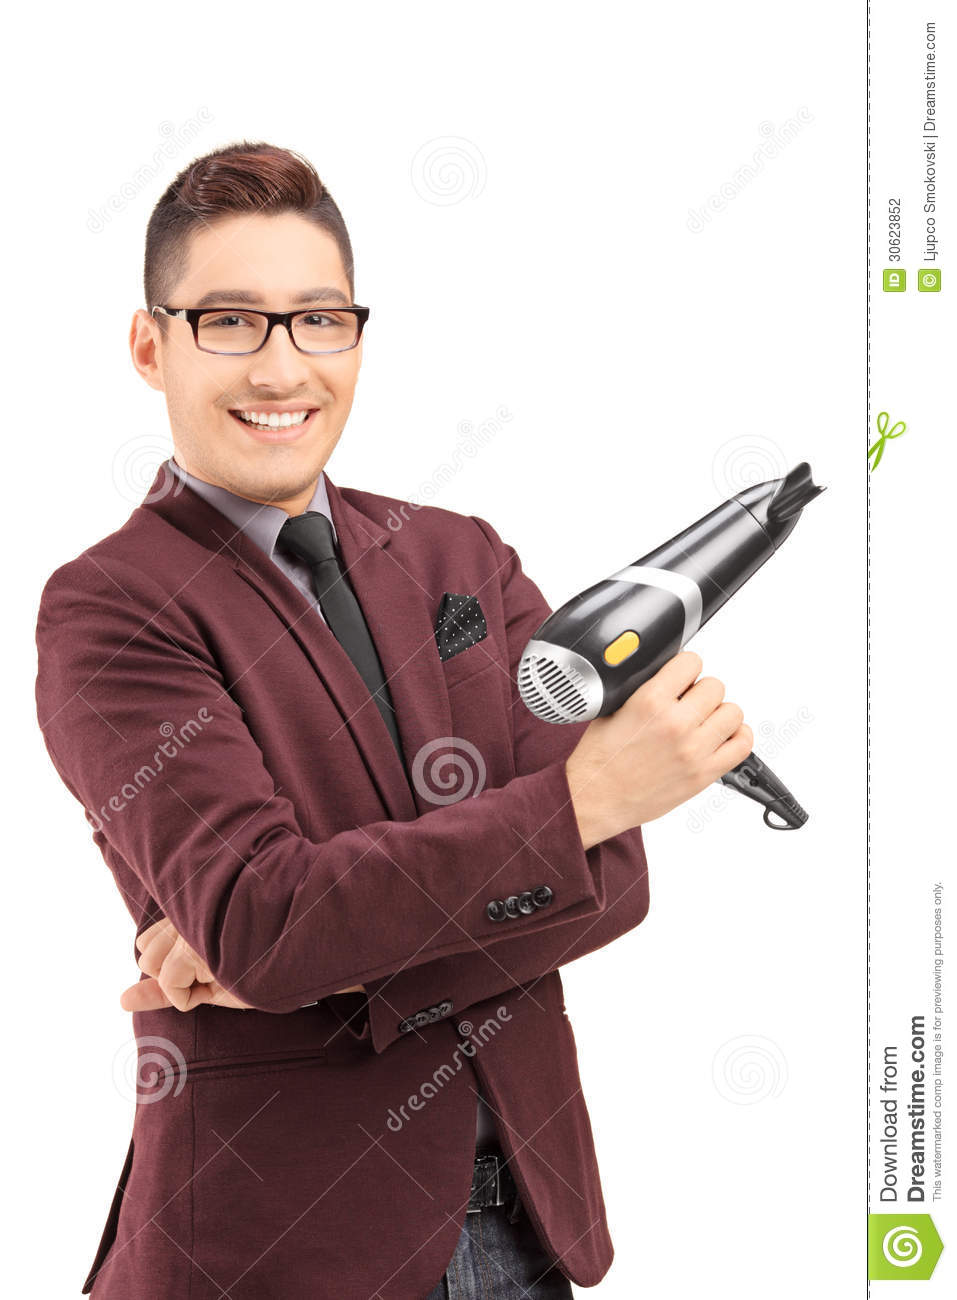 Smiling Male Hairdresser Holding A Blow Dryer Stock